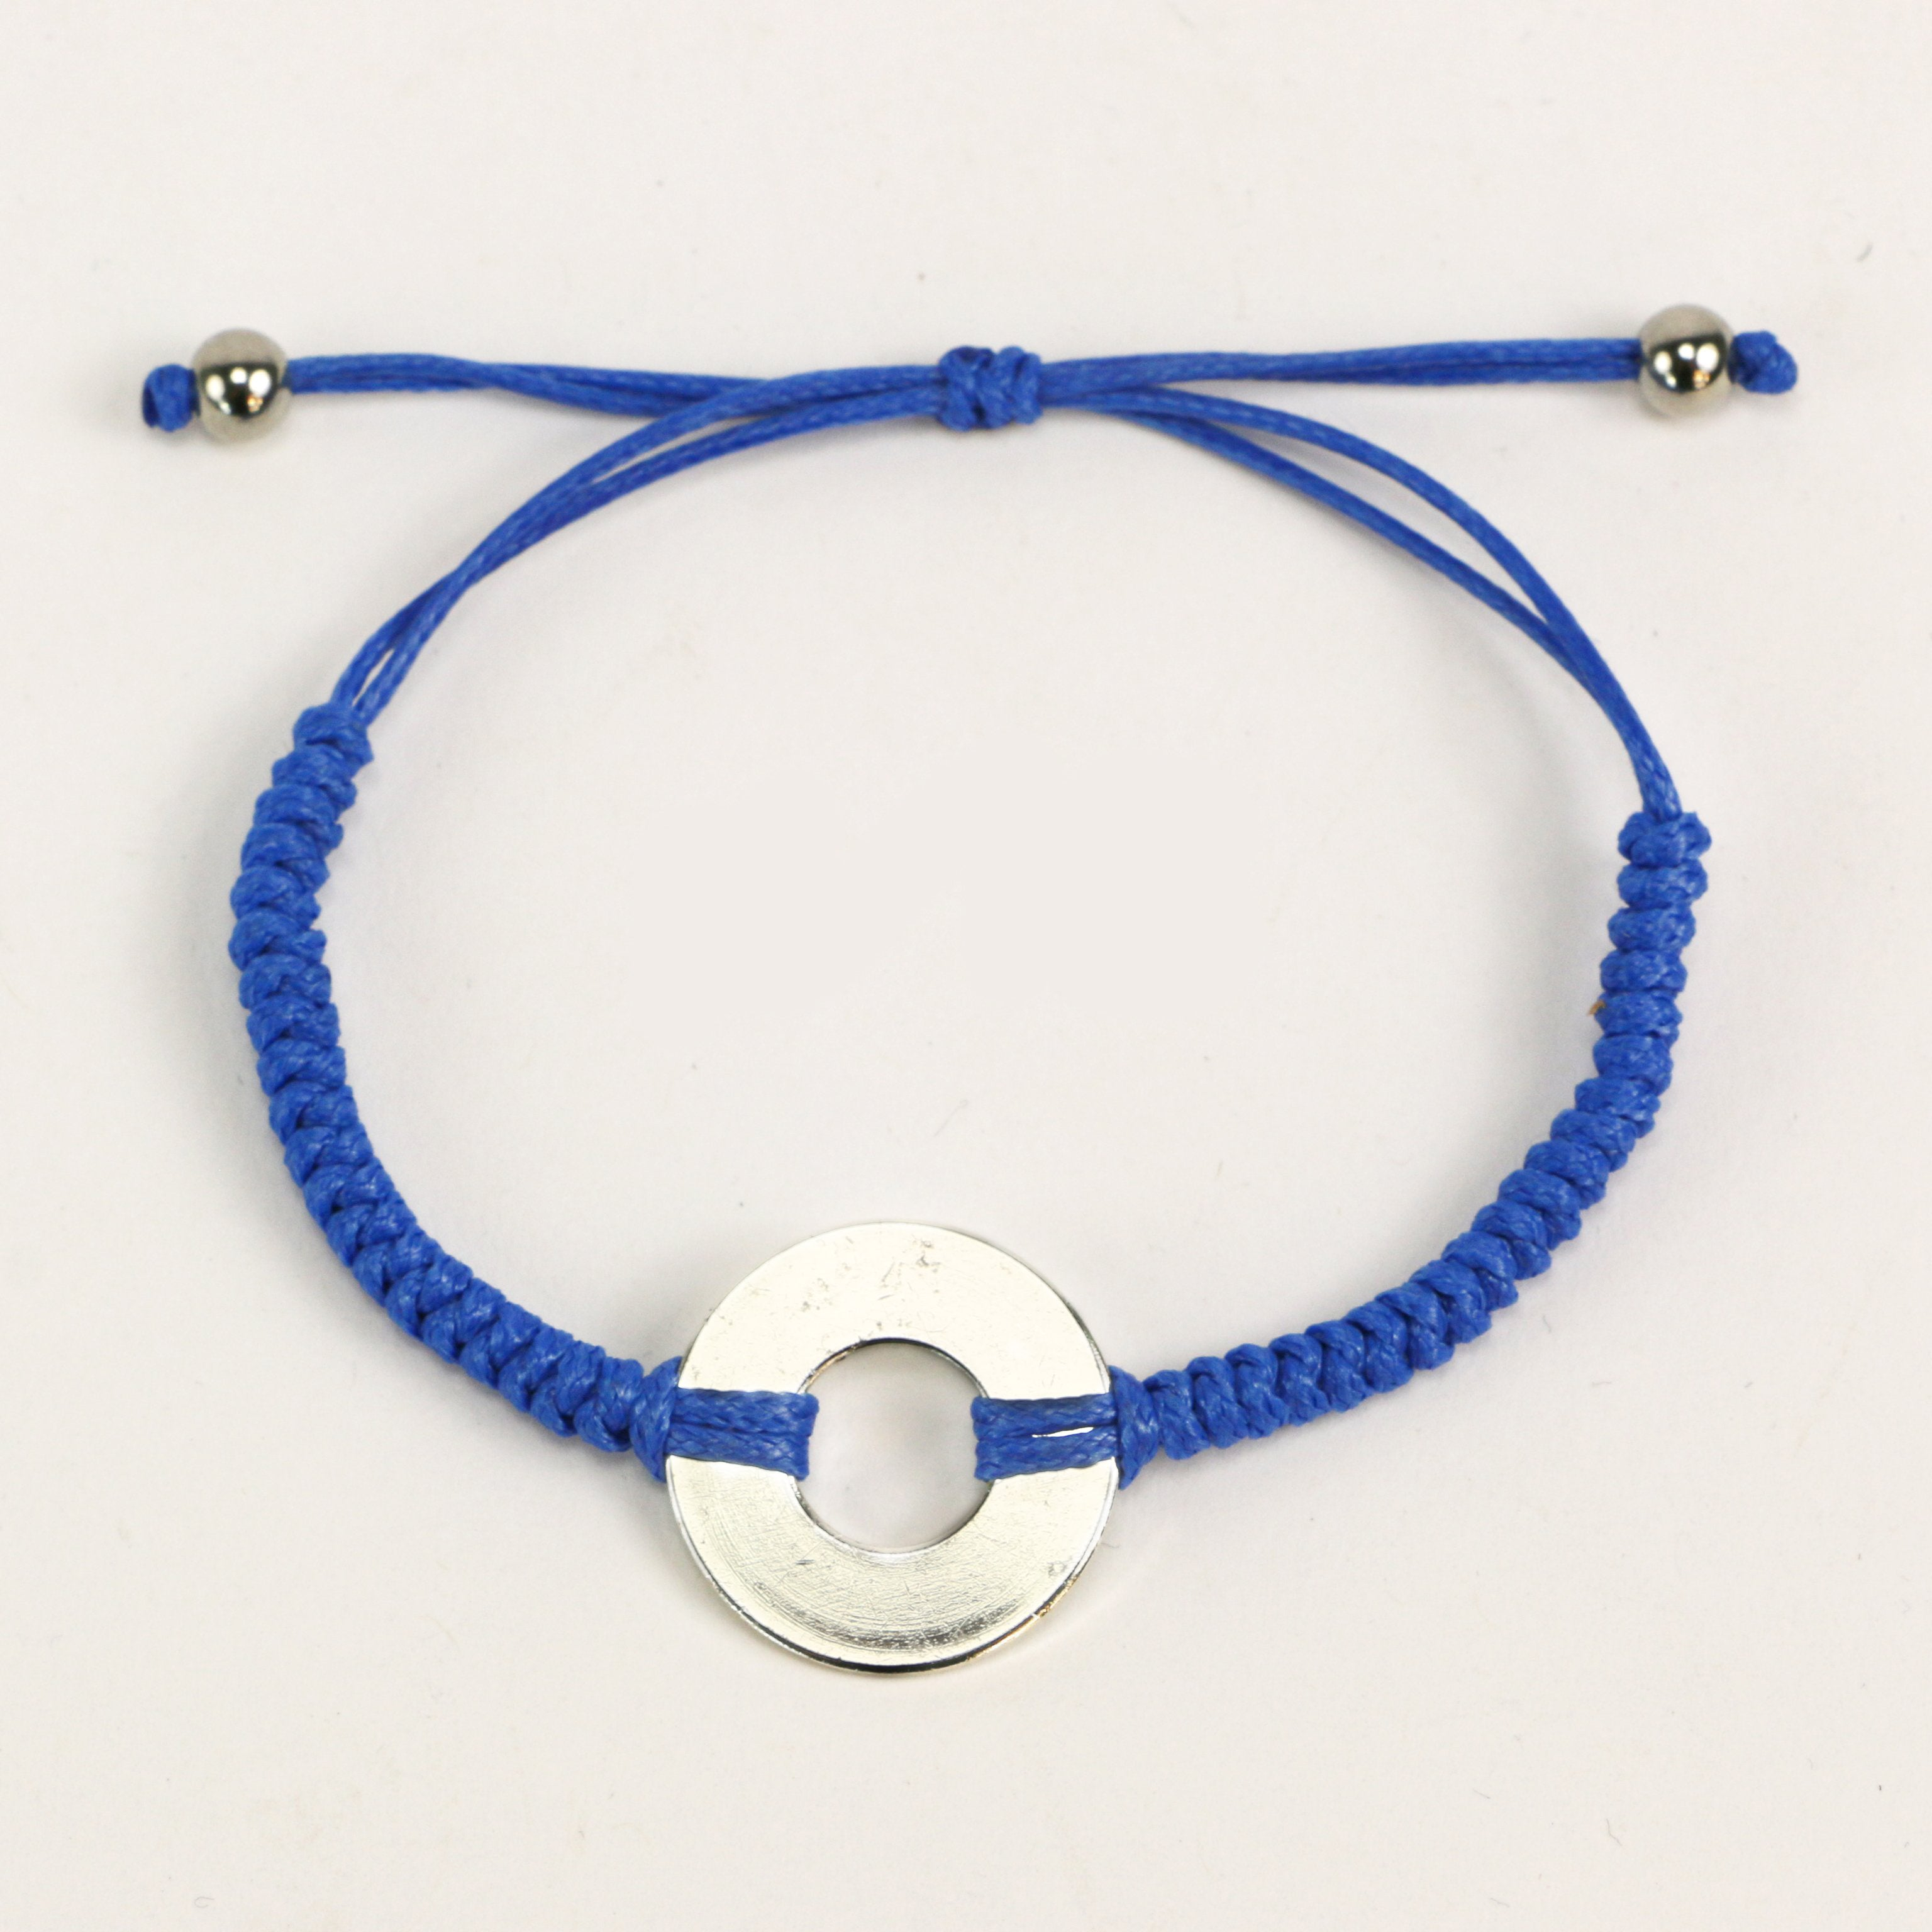 MyIntent Refill Round Bracelet in Blue with Silver Token